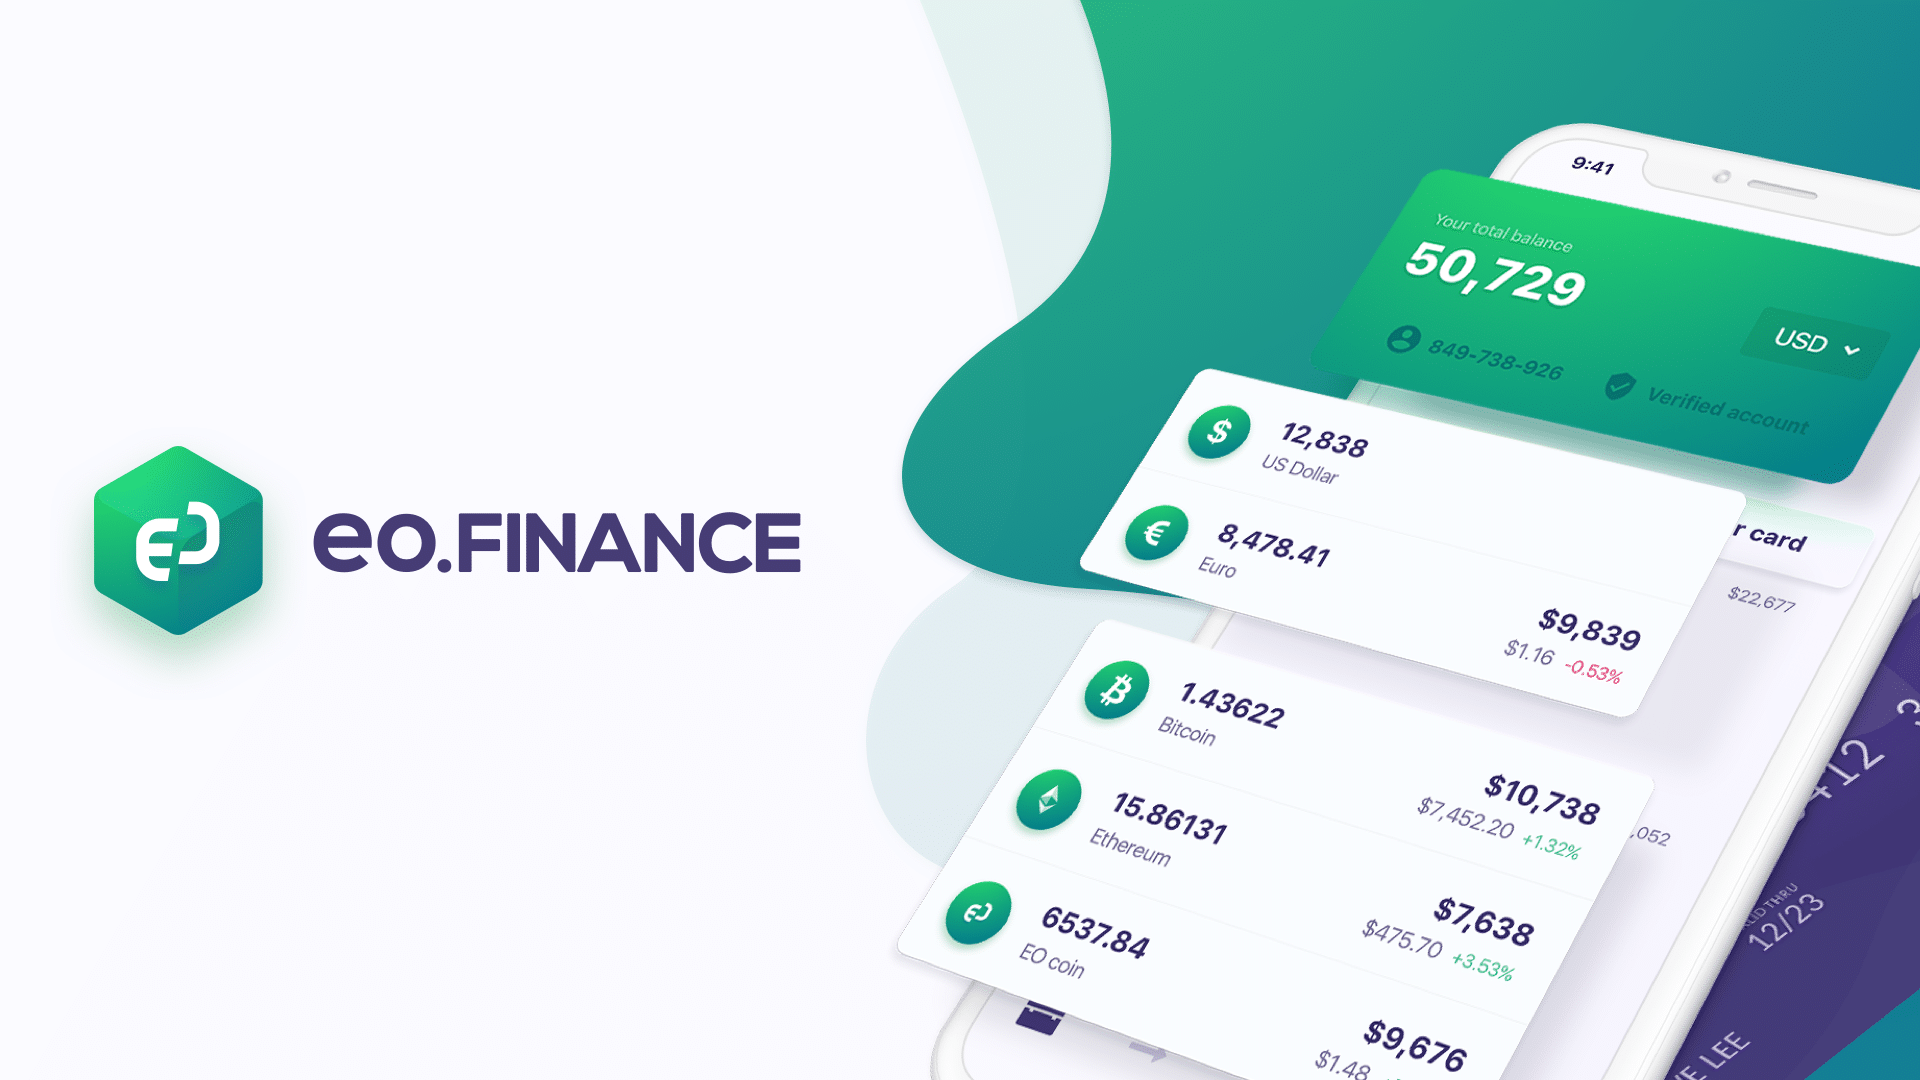 EO.Finance- A One-Stop Crypto Financial Management Platform Like No Other